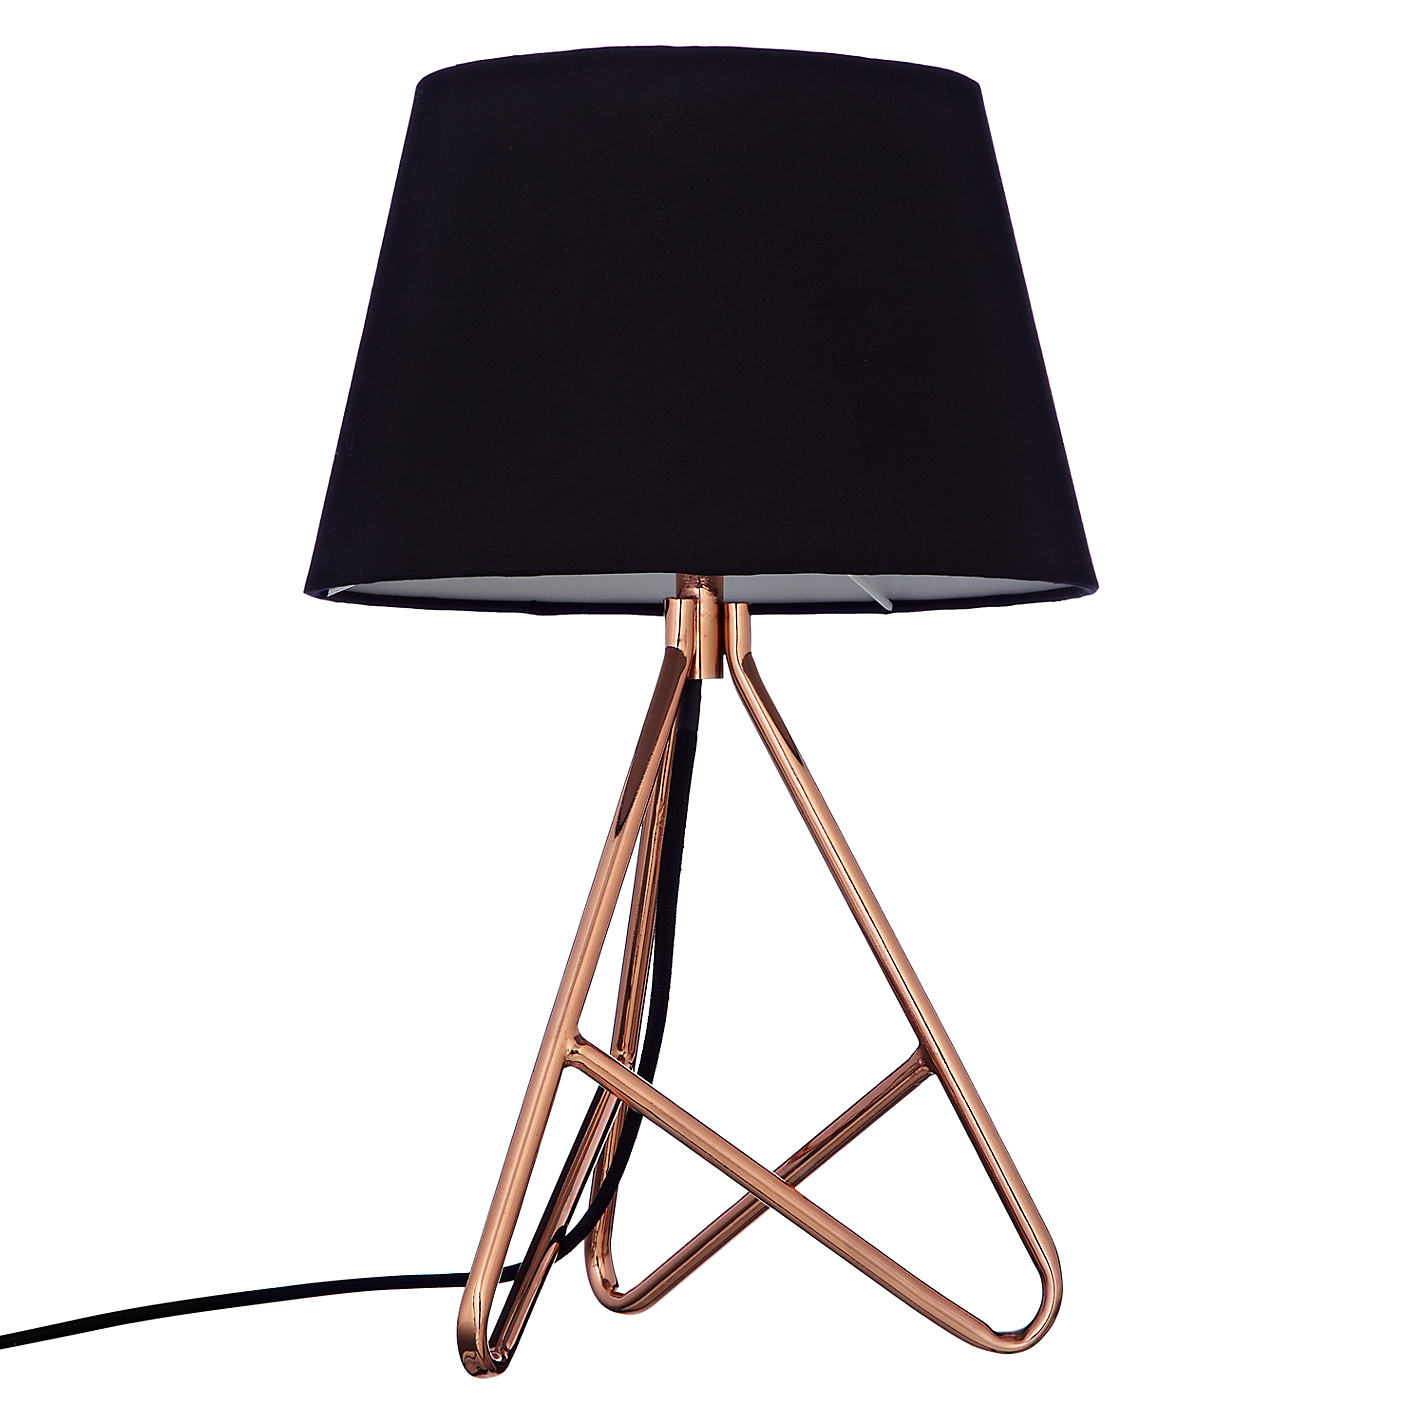 Buy john lewis albus twisted table lamp john lewis buy john lewis albus twisted table lamp online at johnlewis geotapseo Image collections